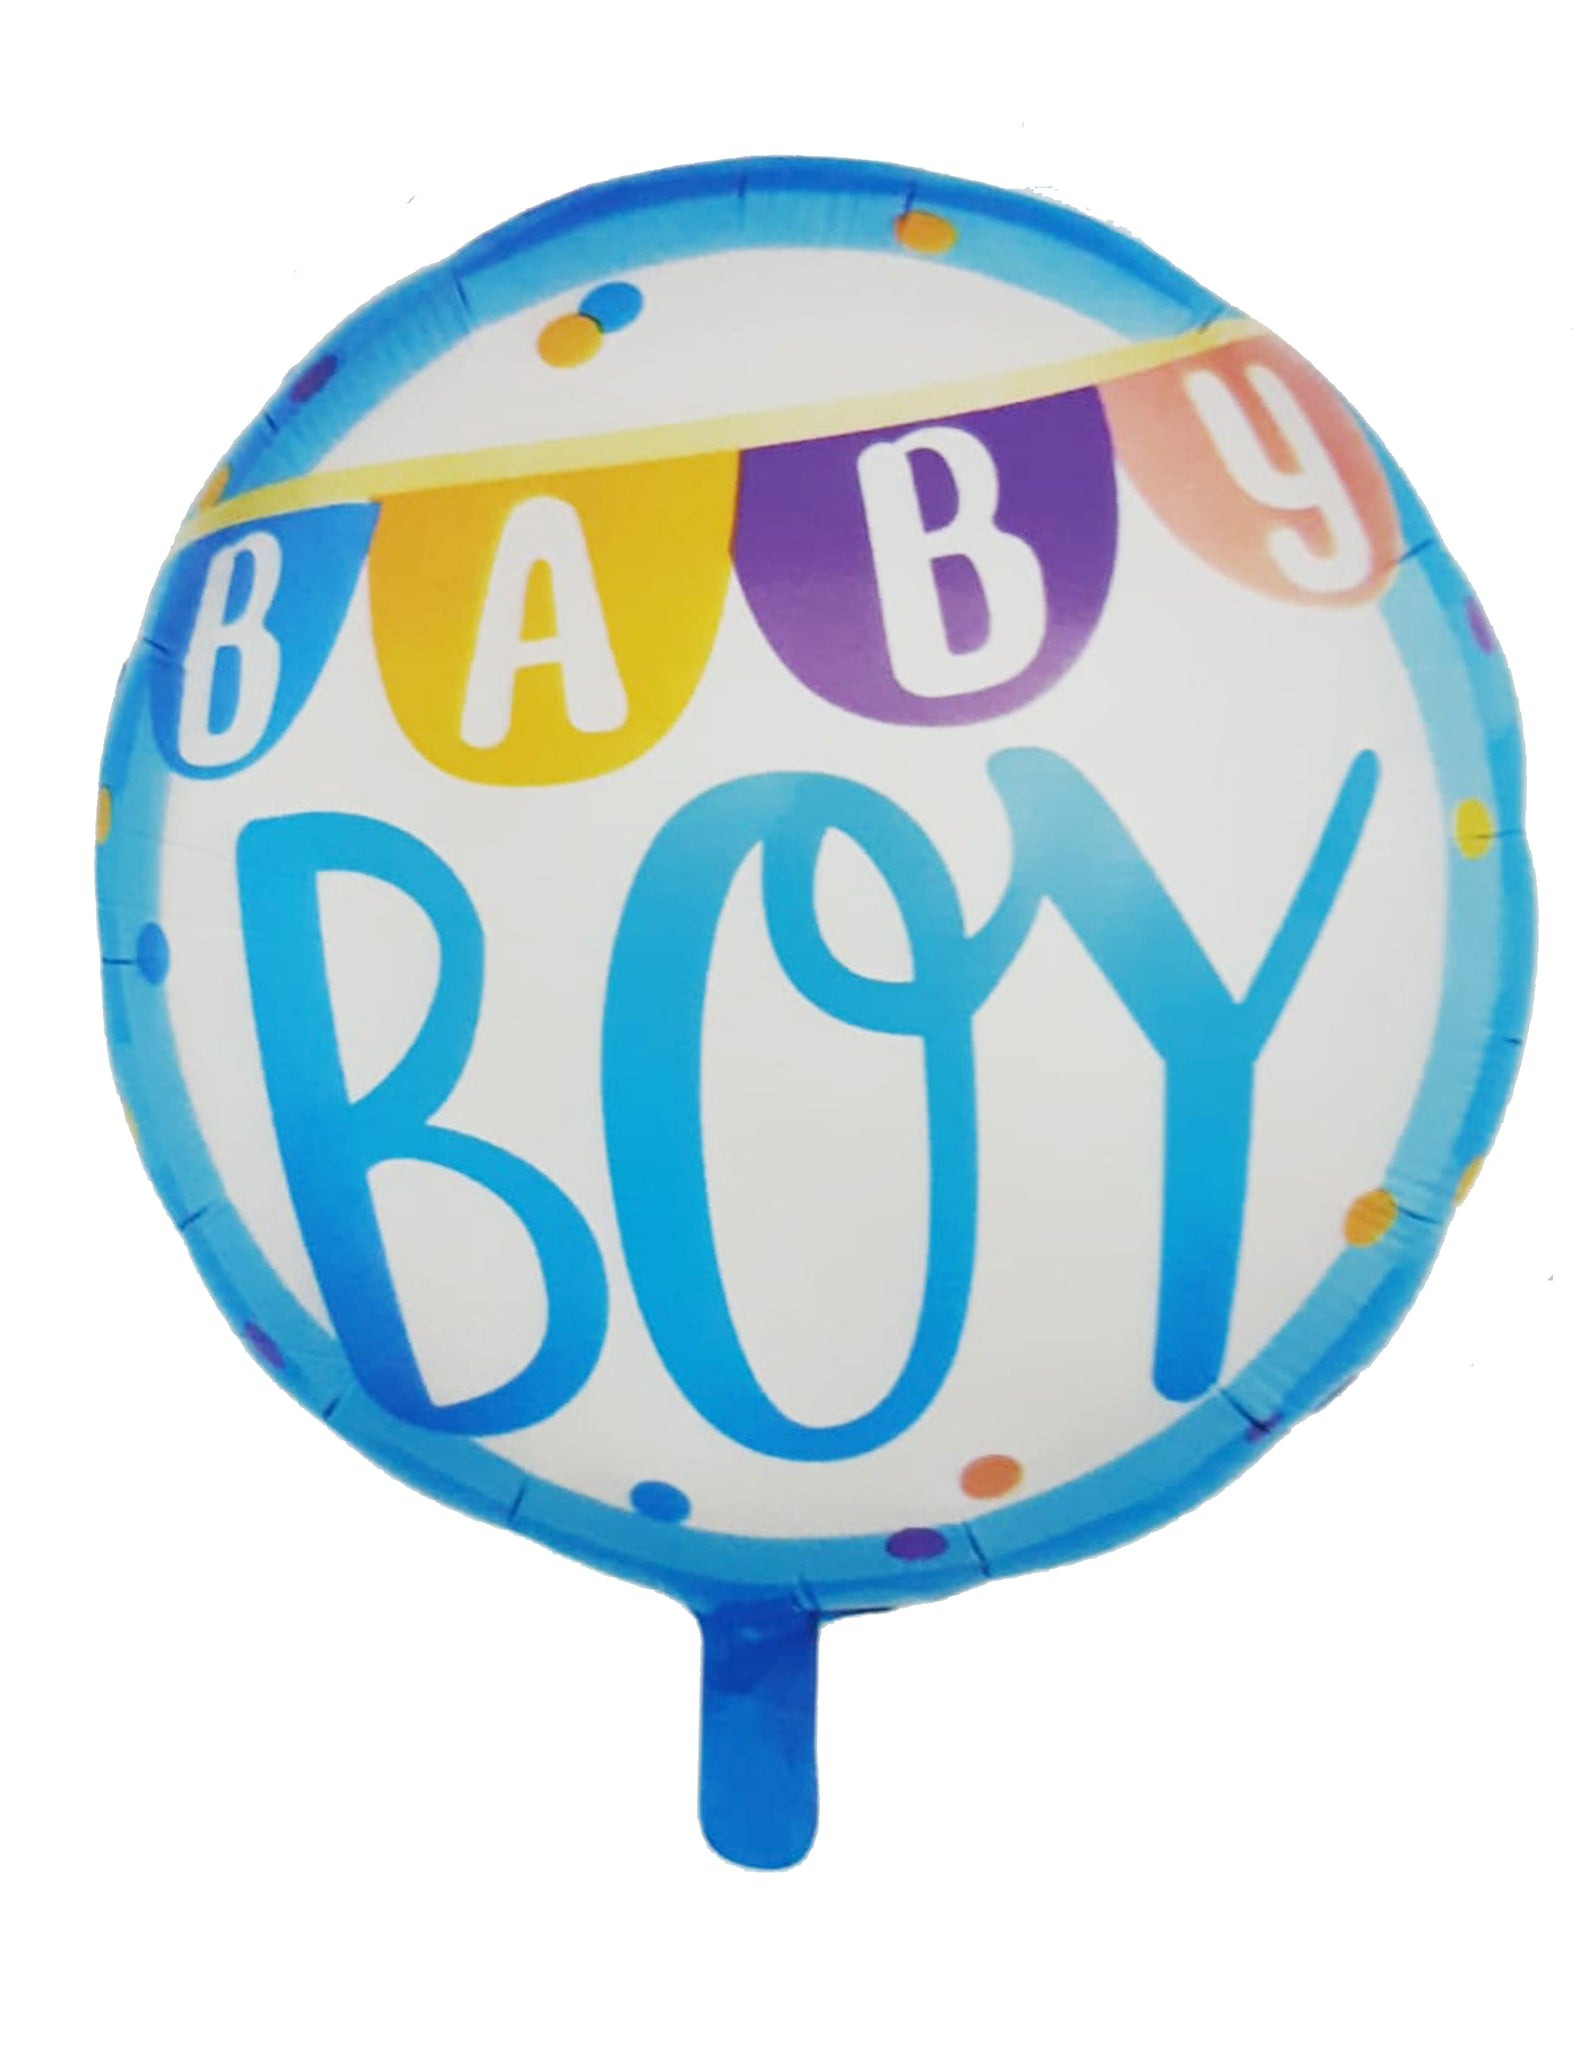 Baby Boy Foil Balloon for sale online in Dubai